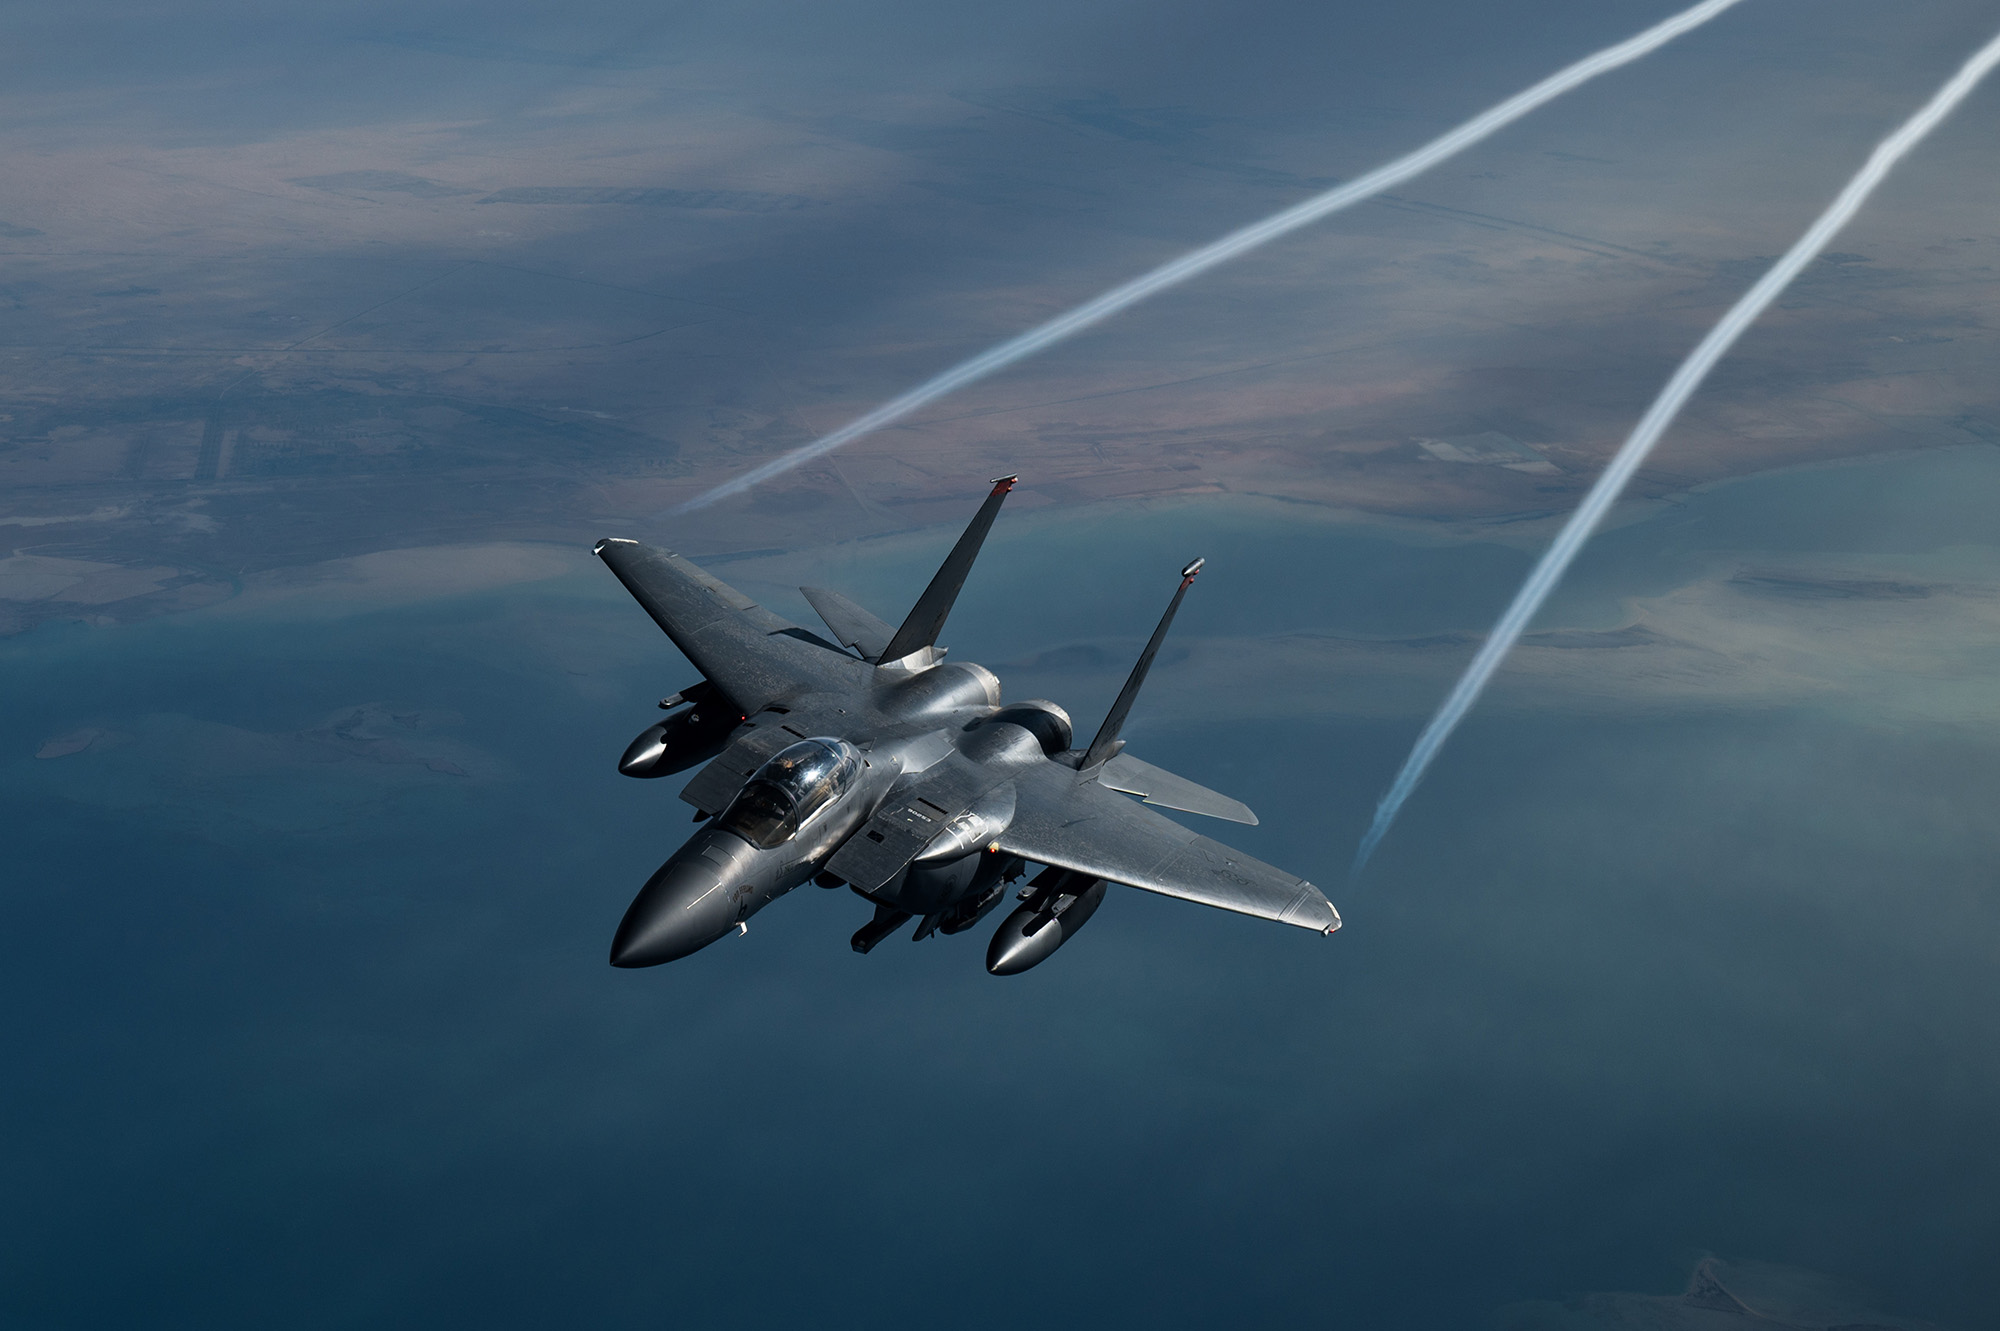 A U.S. Air Force F-15 Strike Eagle flies over the U.S. Central Command area of responsibility, Feb. 10, 2021.(Staff Sgt. Sean Carnes/Air Force)